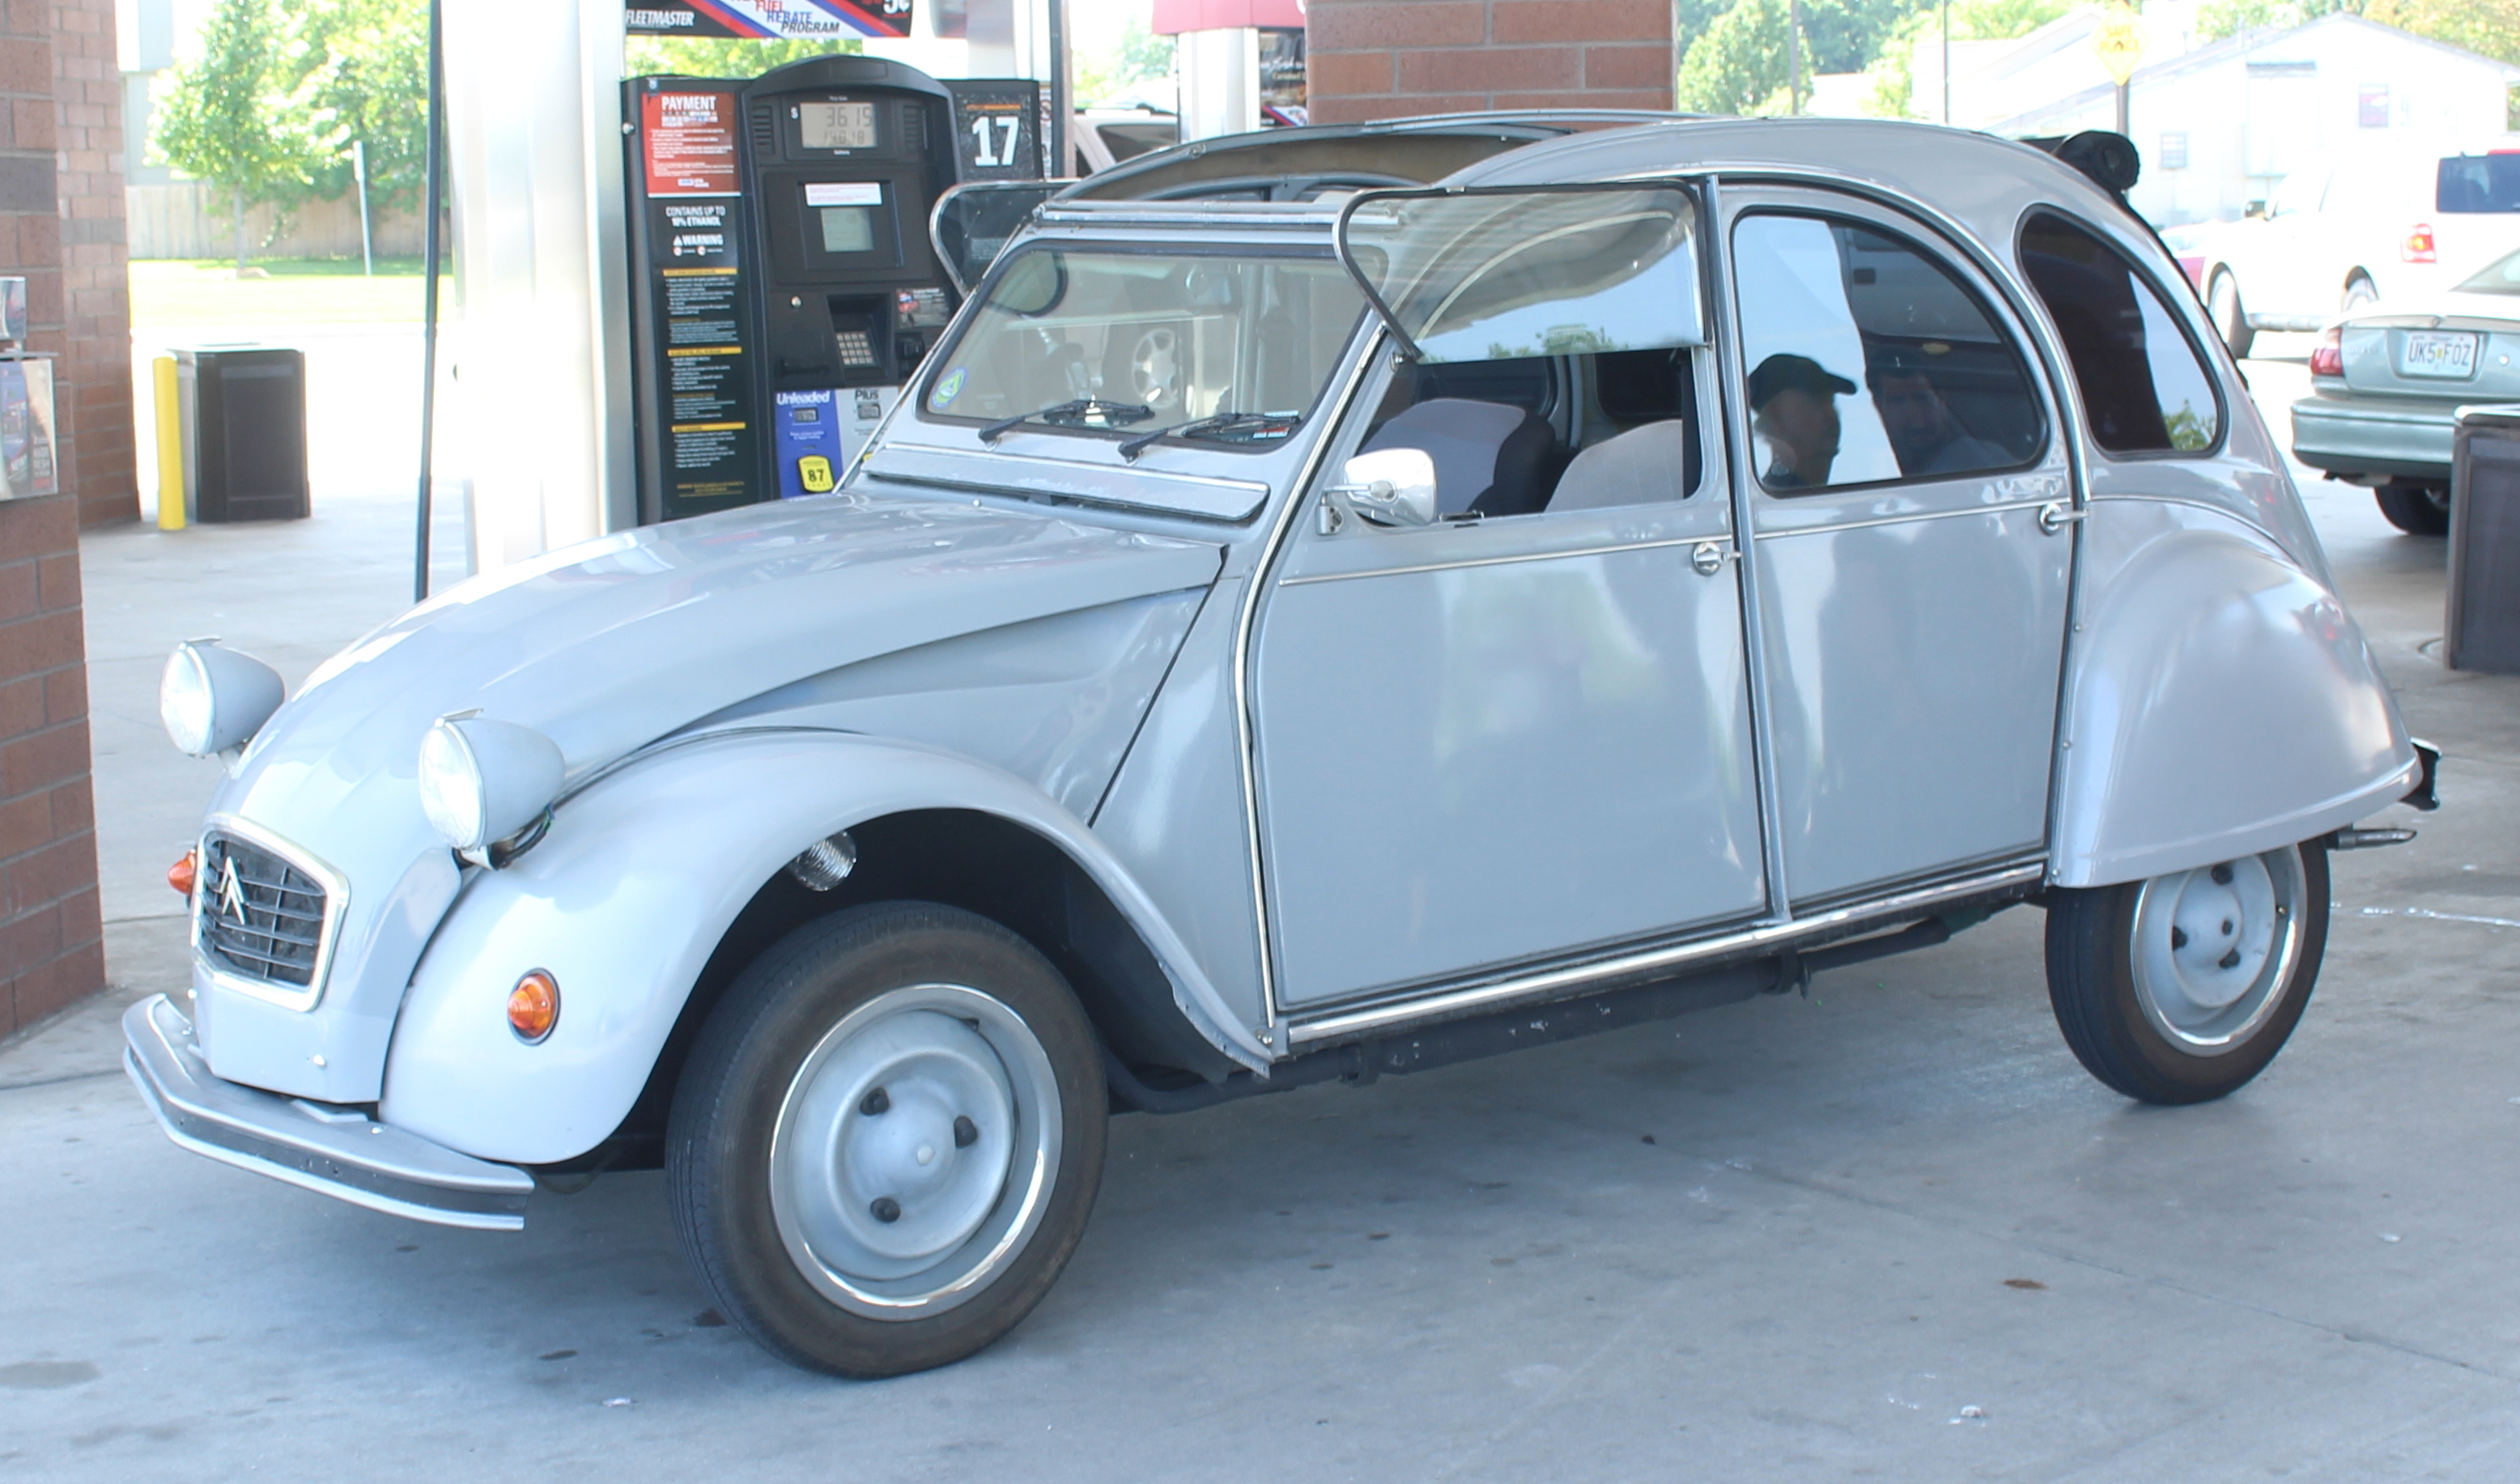 1981 Citroen 2CV, a front-wheel drive French car produced after World War II for the people. It uses a BMW motorcycle engine. This one was imported after it was 25-years old. Otherwise they were not legal to bring to the U.S.